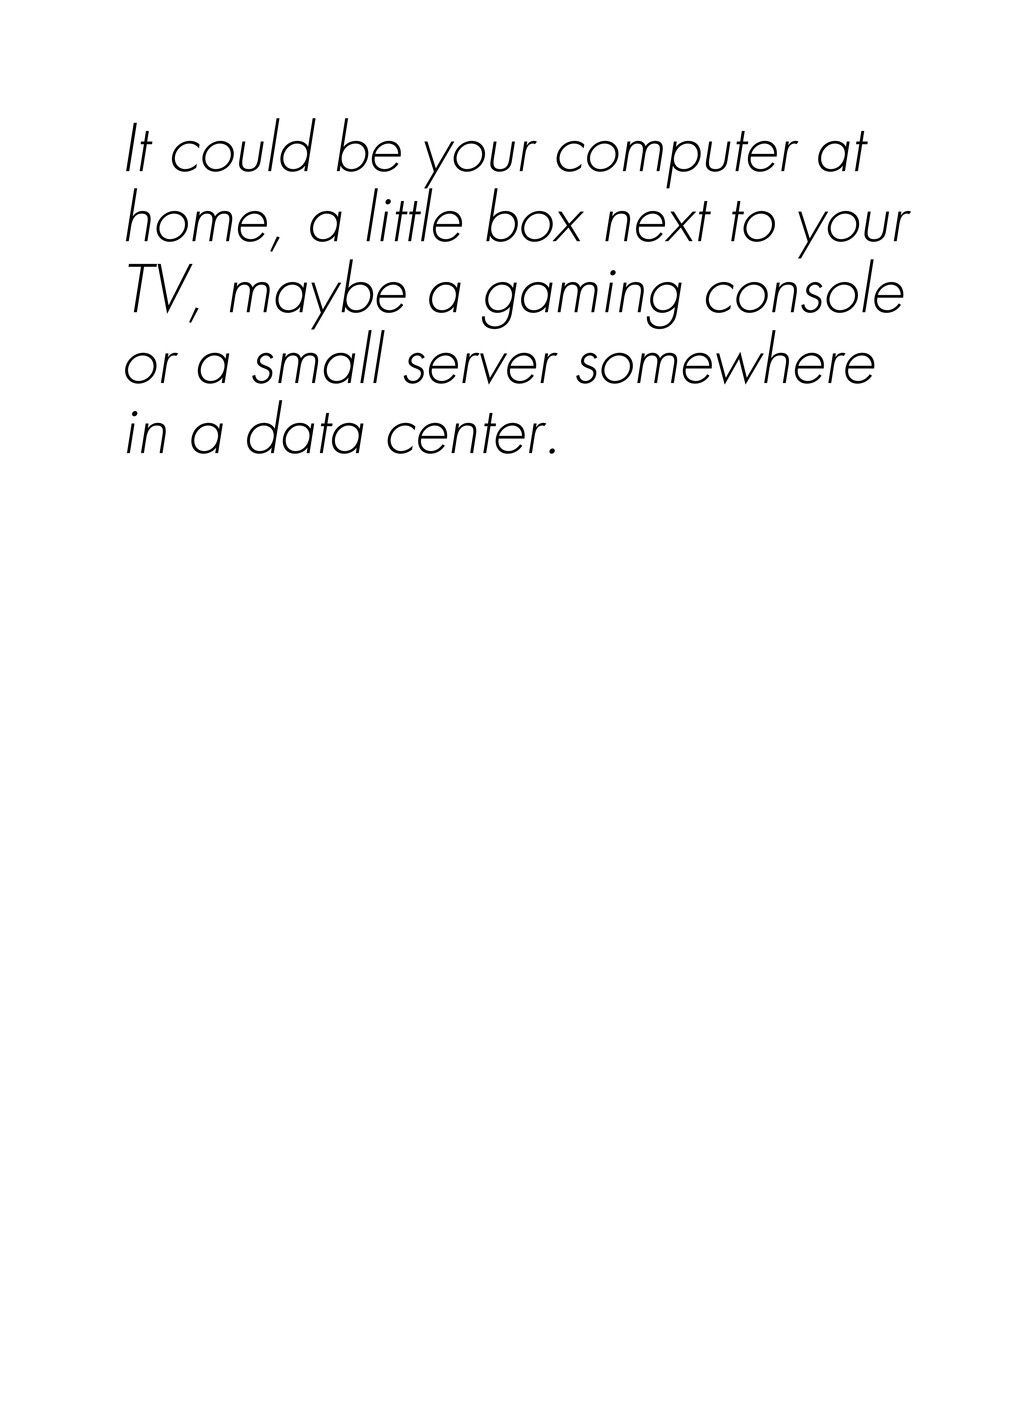 It could be your computer at home, a little box...